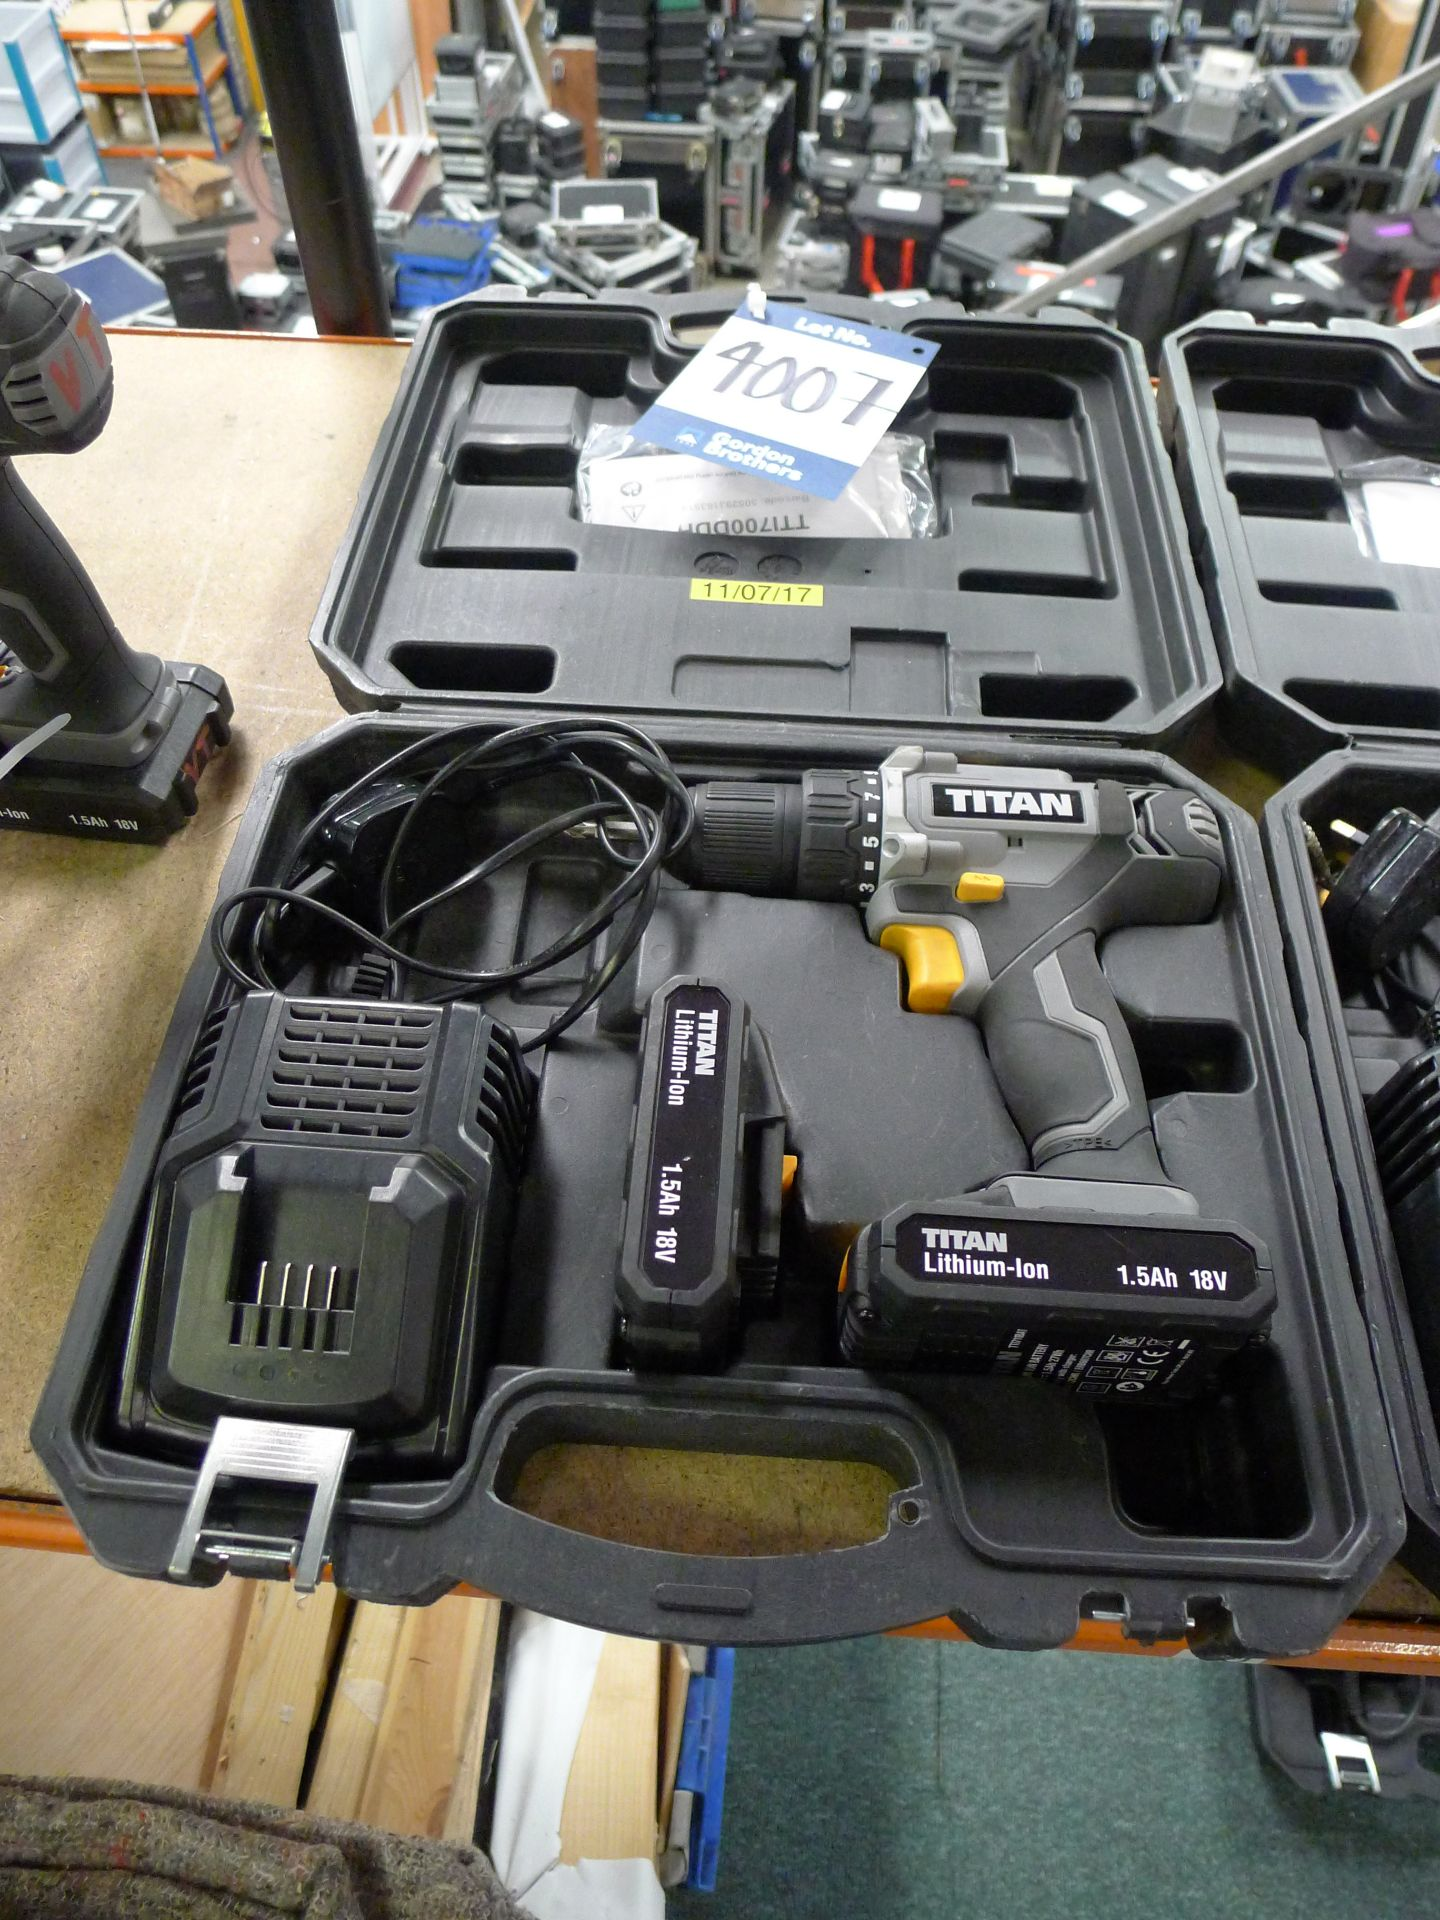 Lot 4007 - Titan 18 V Drill Driver with Charger and Spare Bat